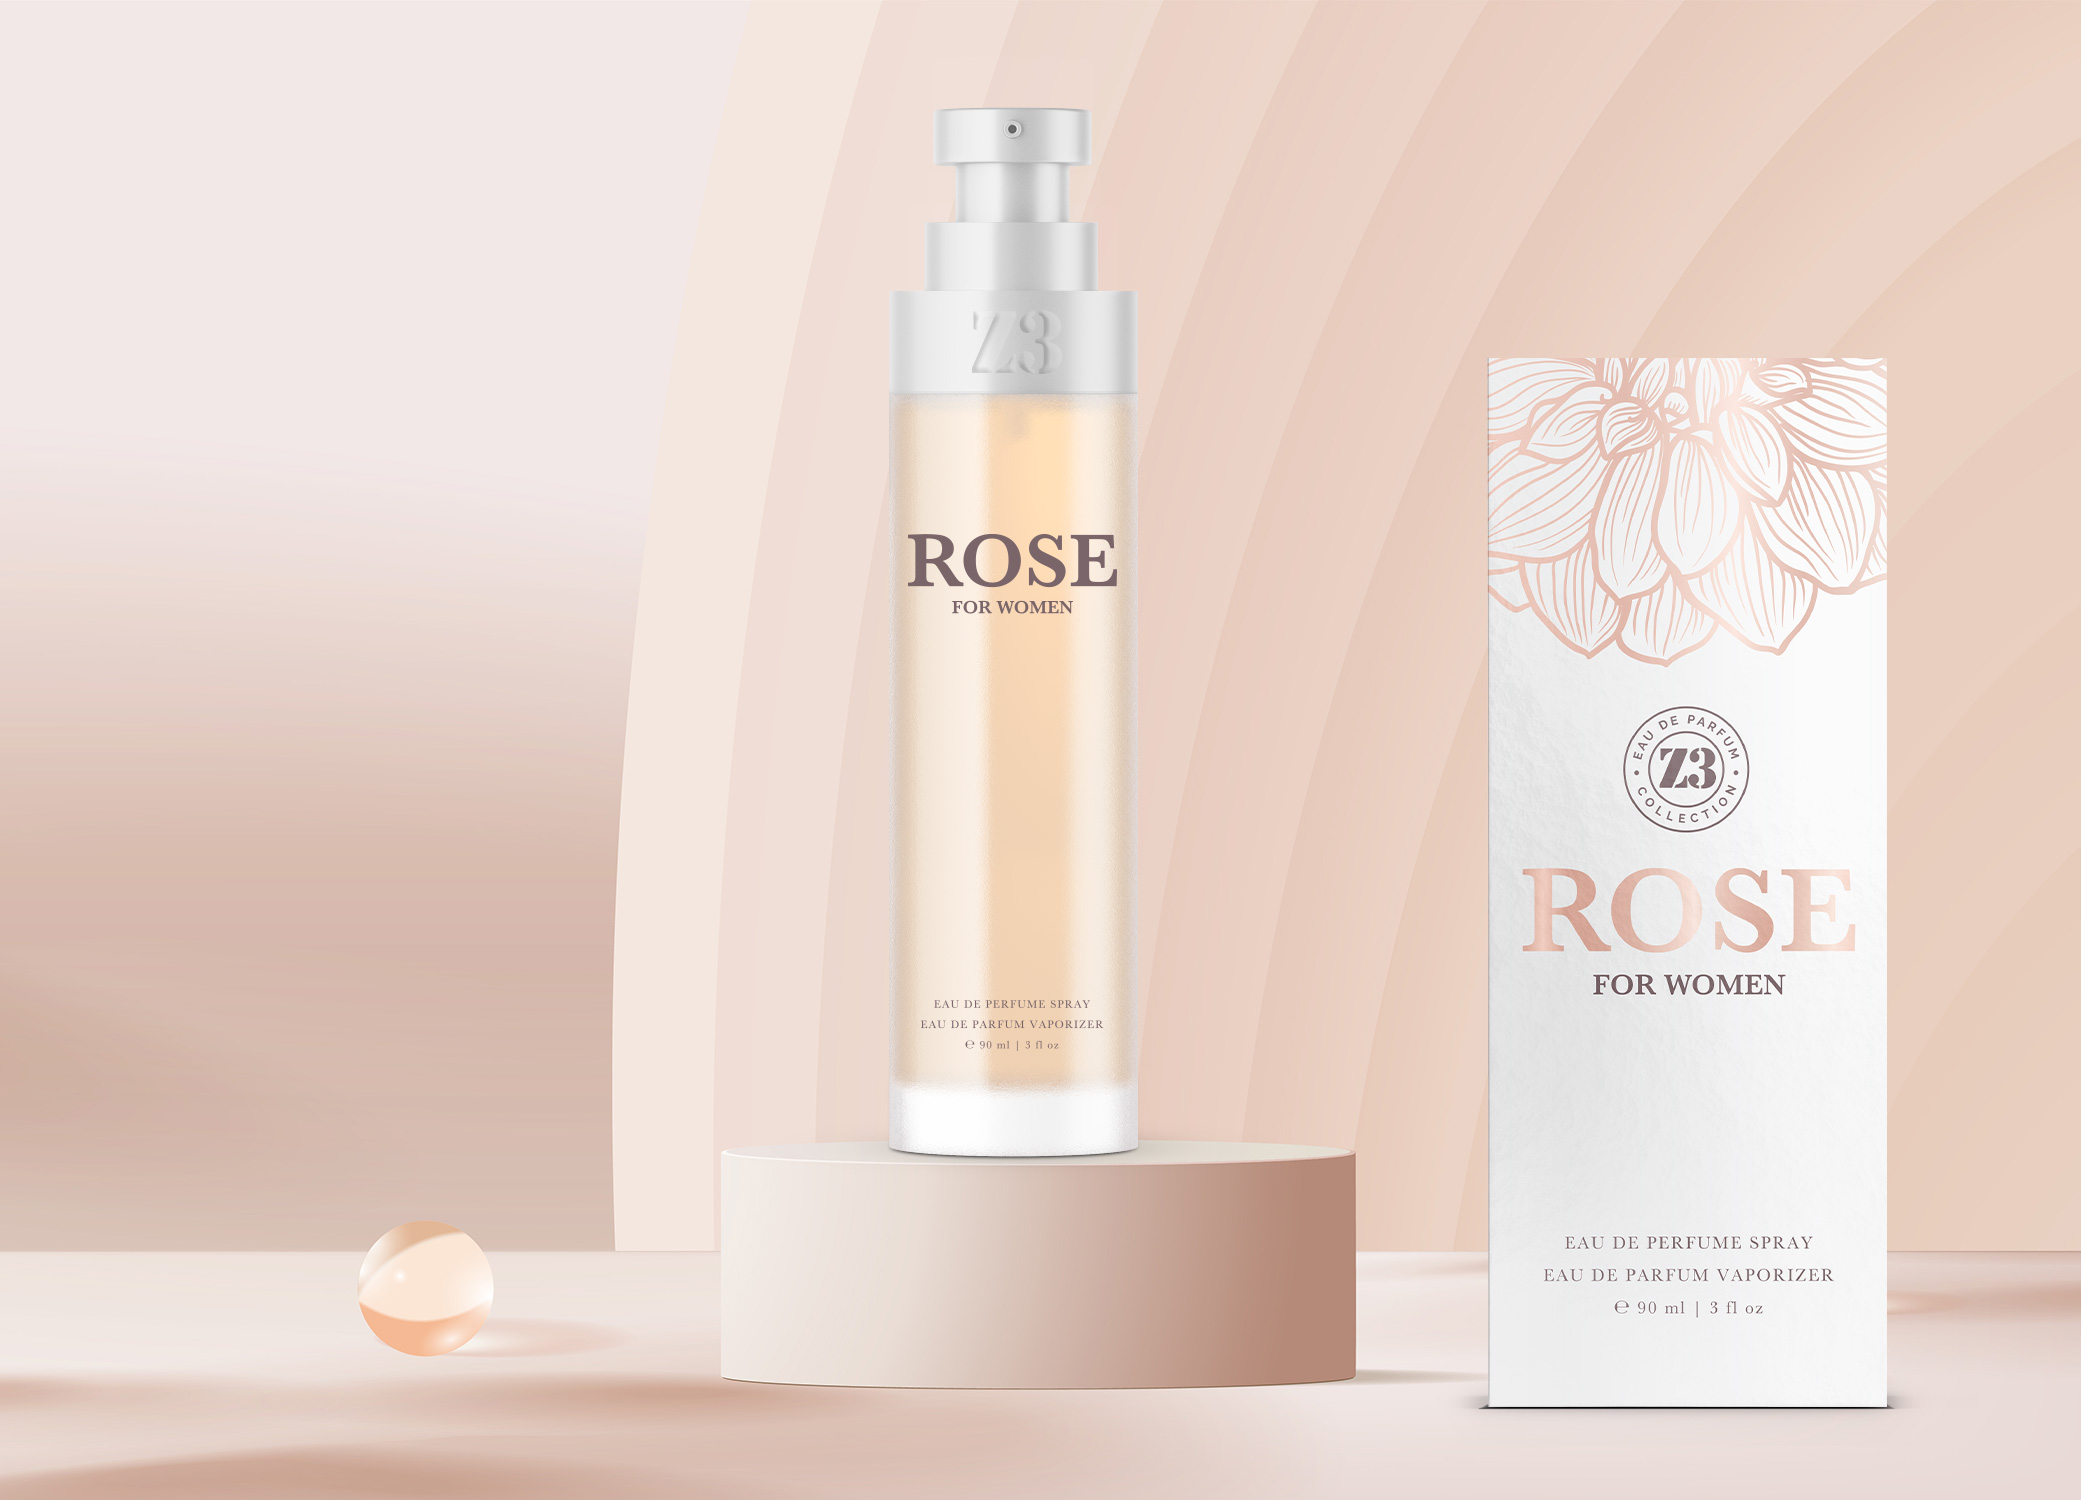 YZY Perfume women's fragrance bottle and package design in pale pink and silver with rose element for Z3 Rose product.